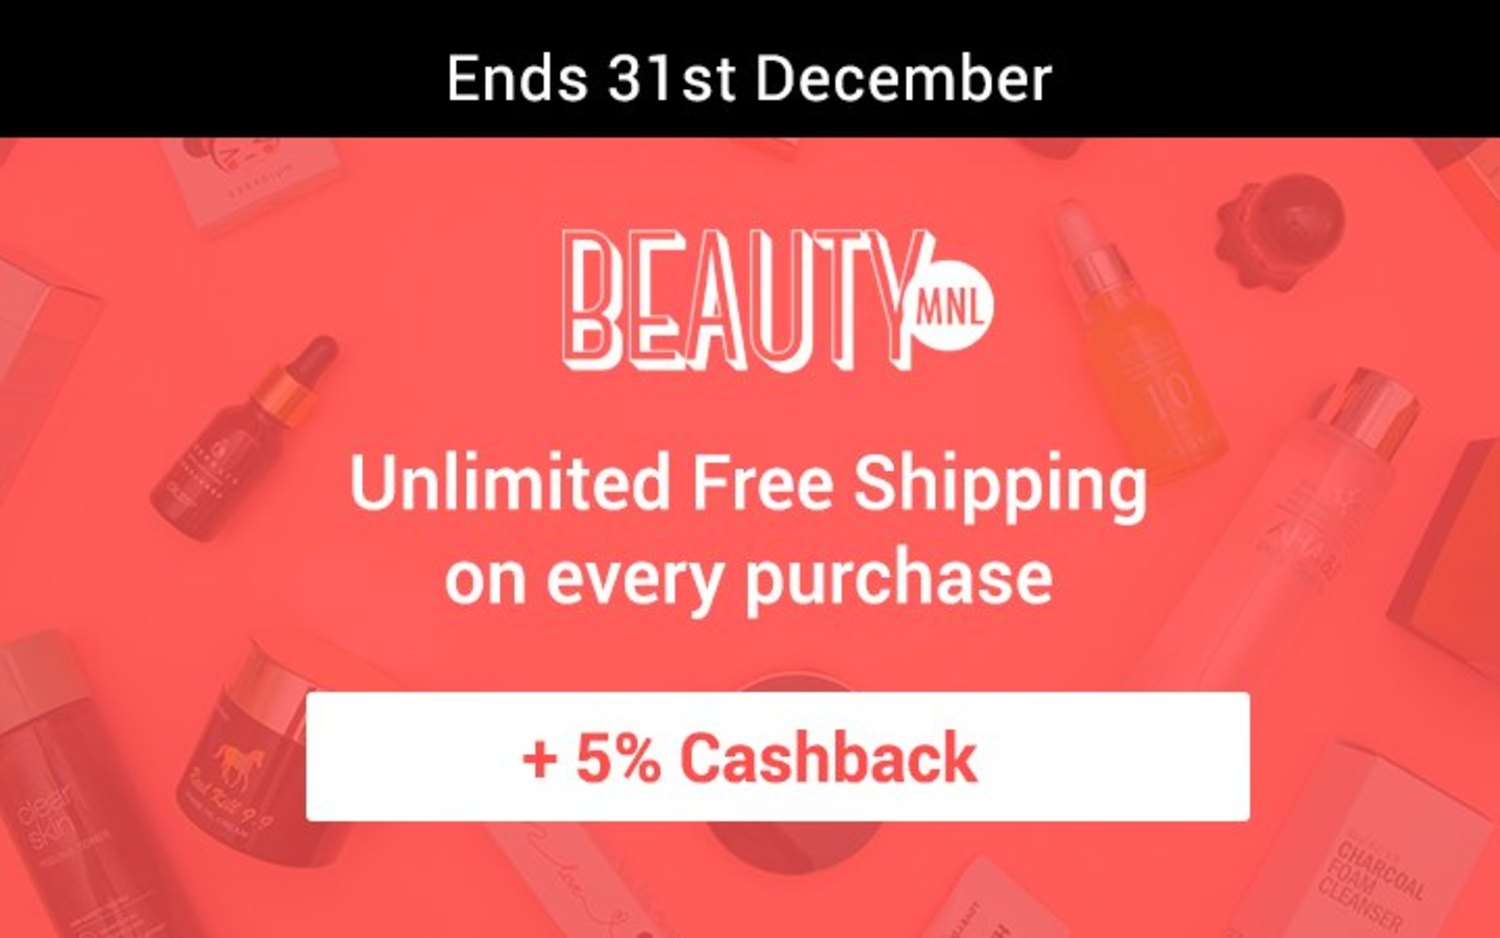 beautymnl 12 Days of Christmas Deals: A different beauty deal everyday + 5% Cashback